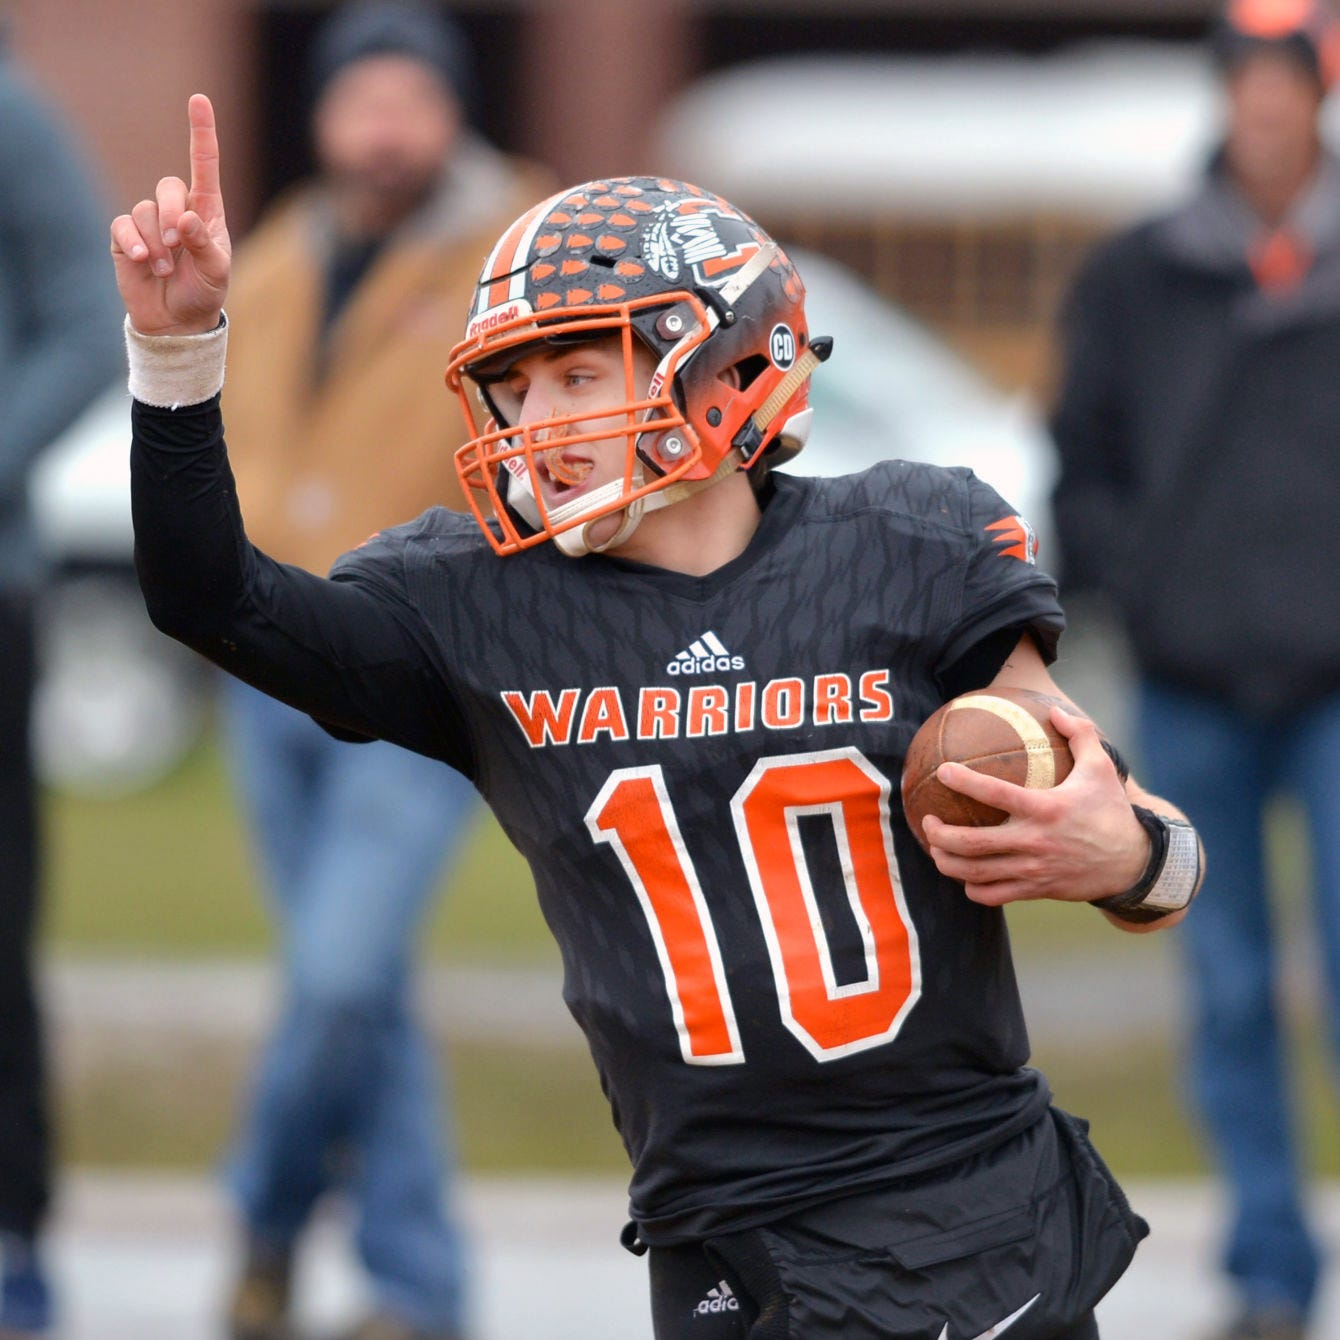 Redemption Chilhowie's goal in state final rematch with Riverheads